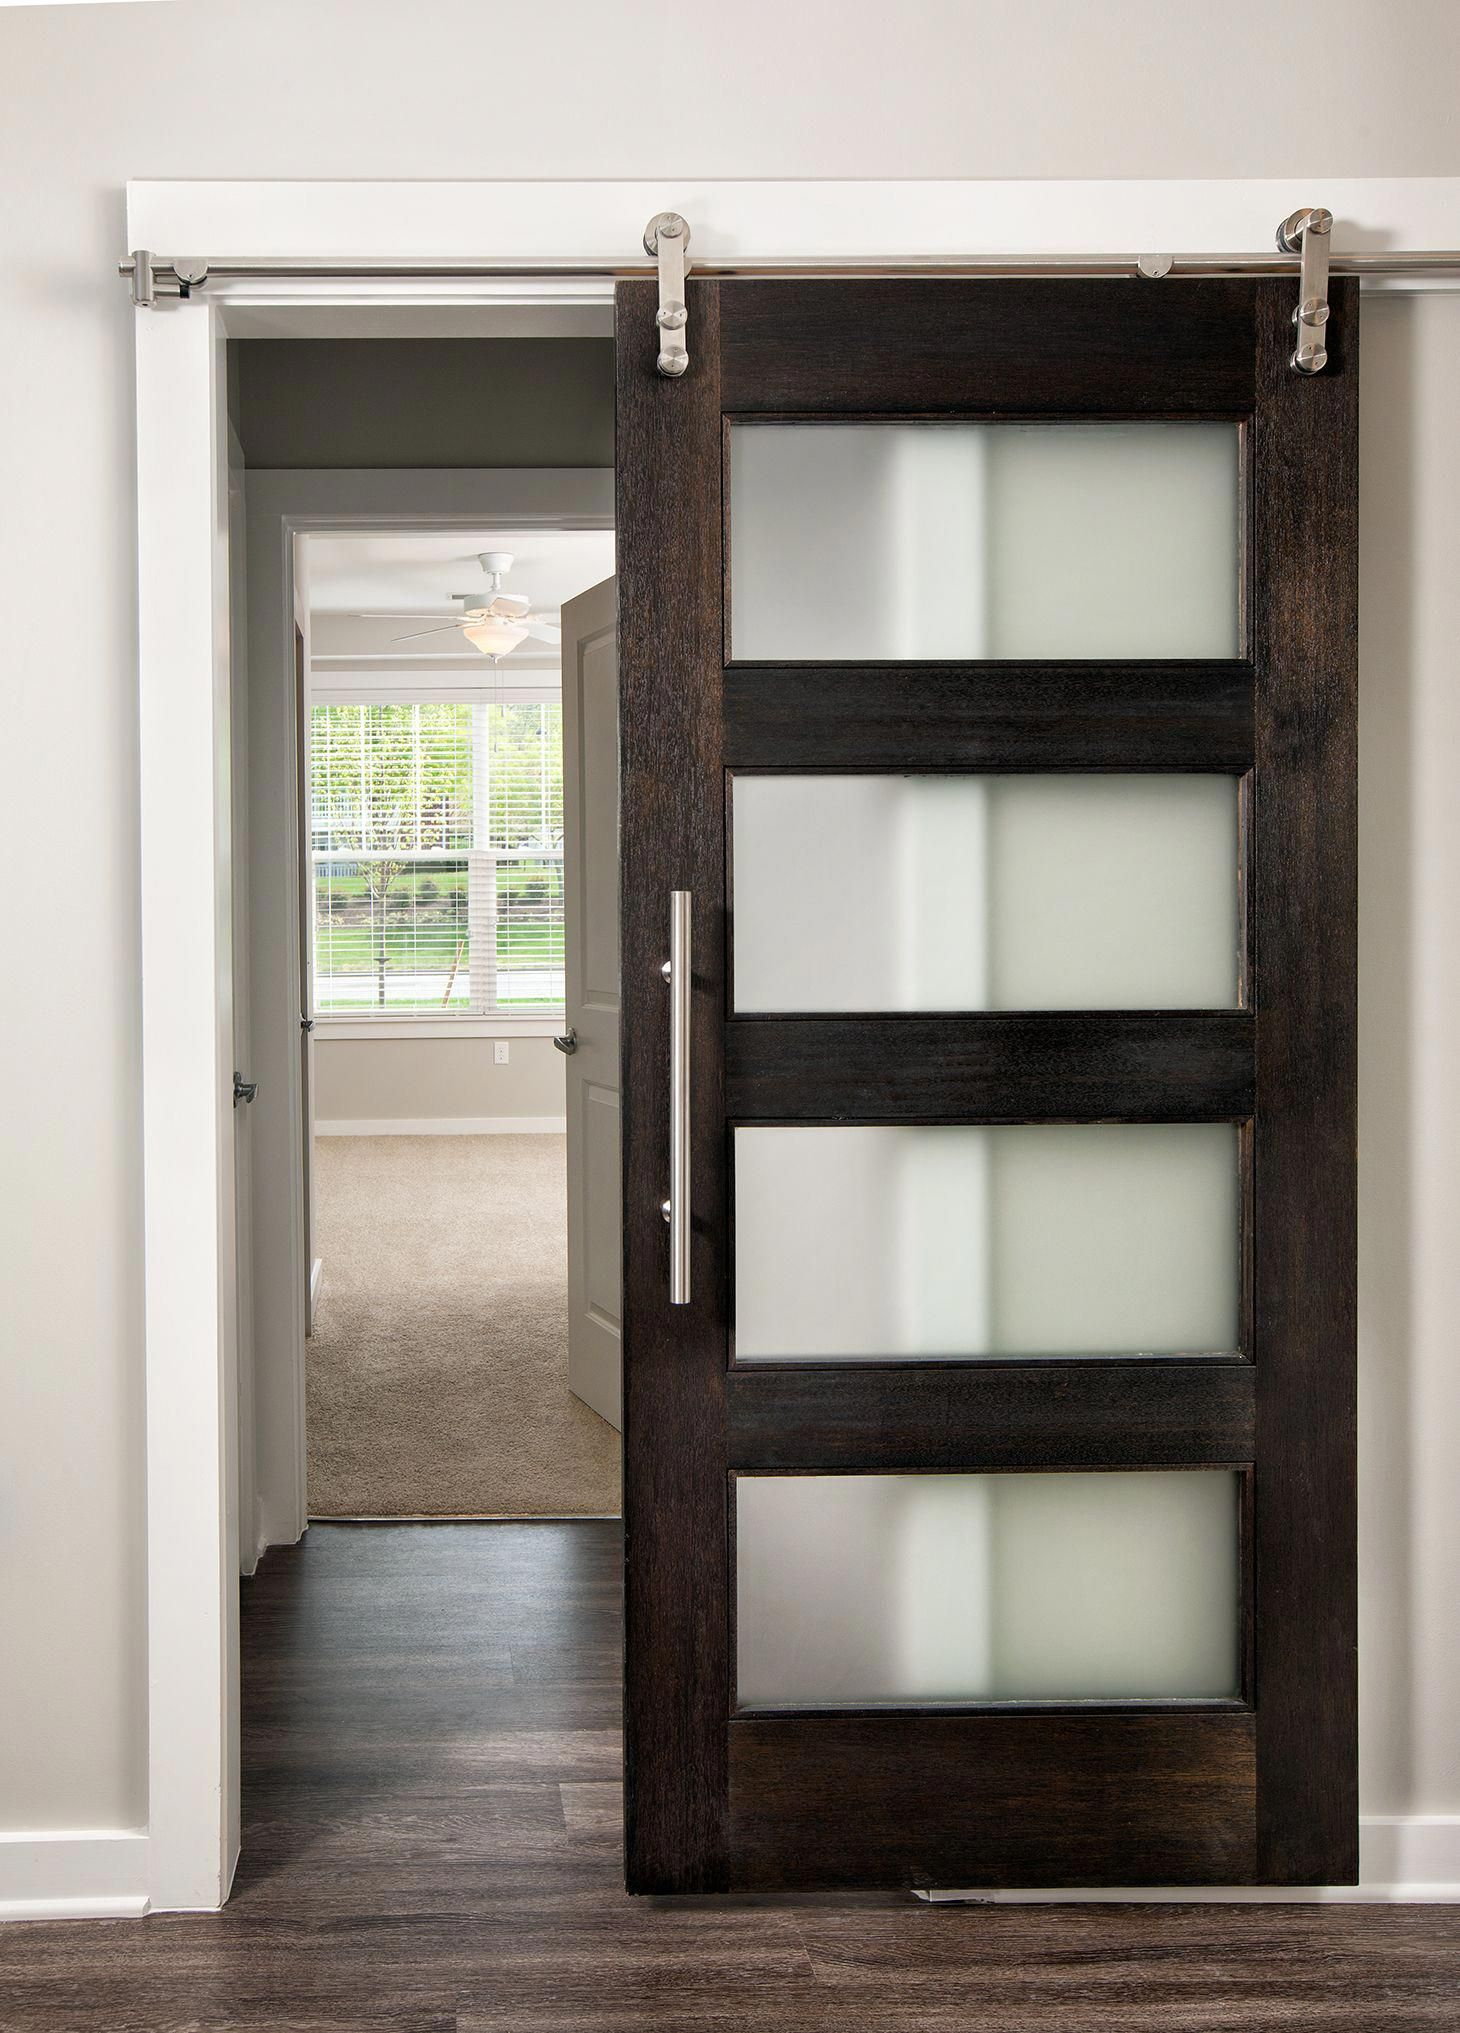 frosted glass sliding doors interior on modern style barn door with frosted glass mahogany doors interior modern interior barn doors sliding doors interior pinterest